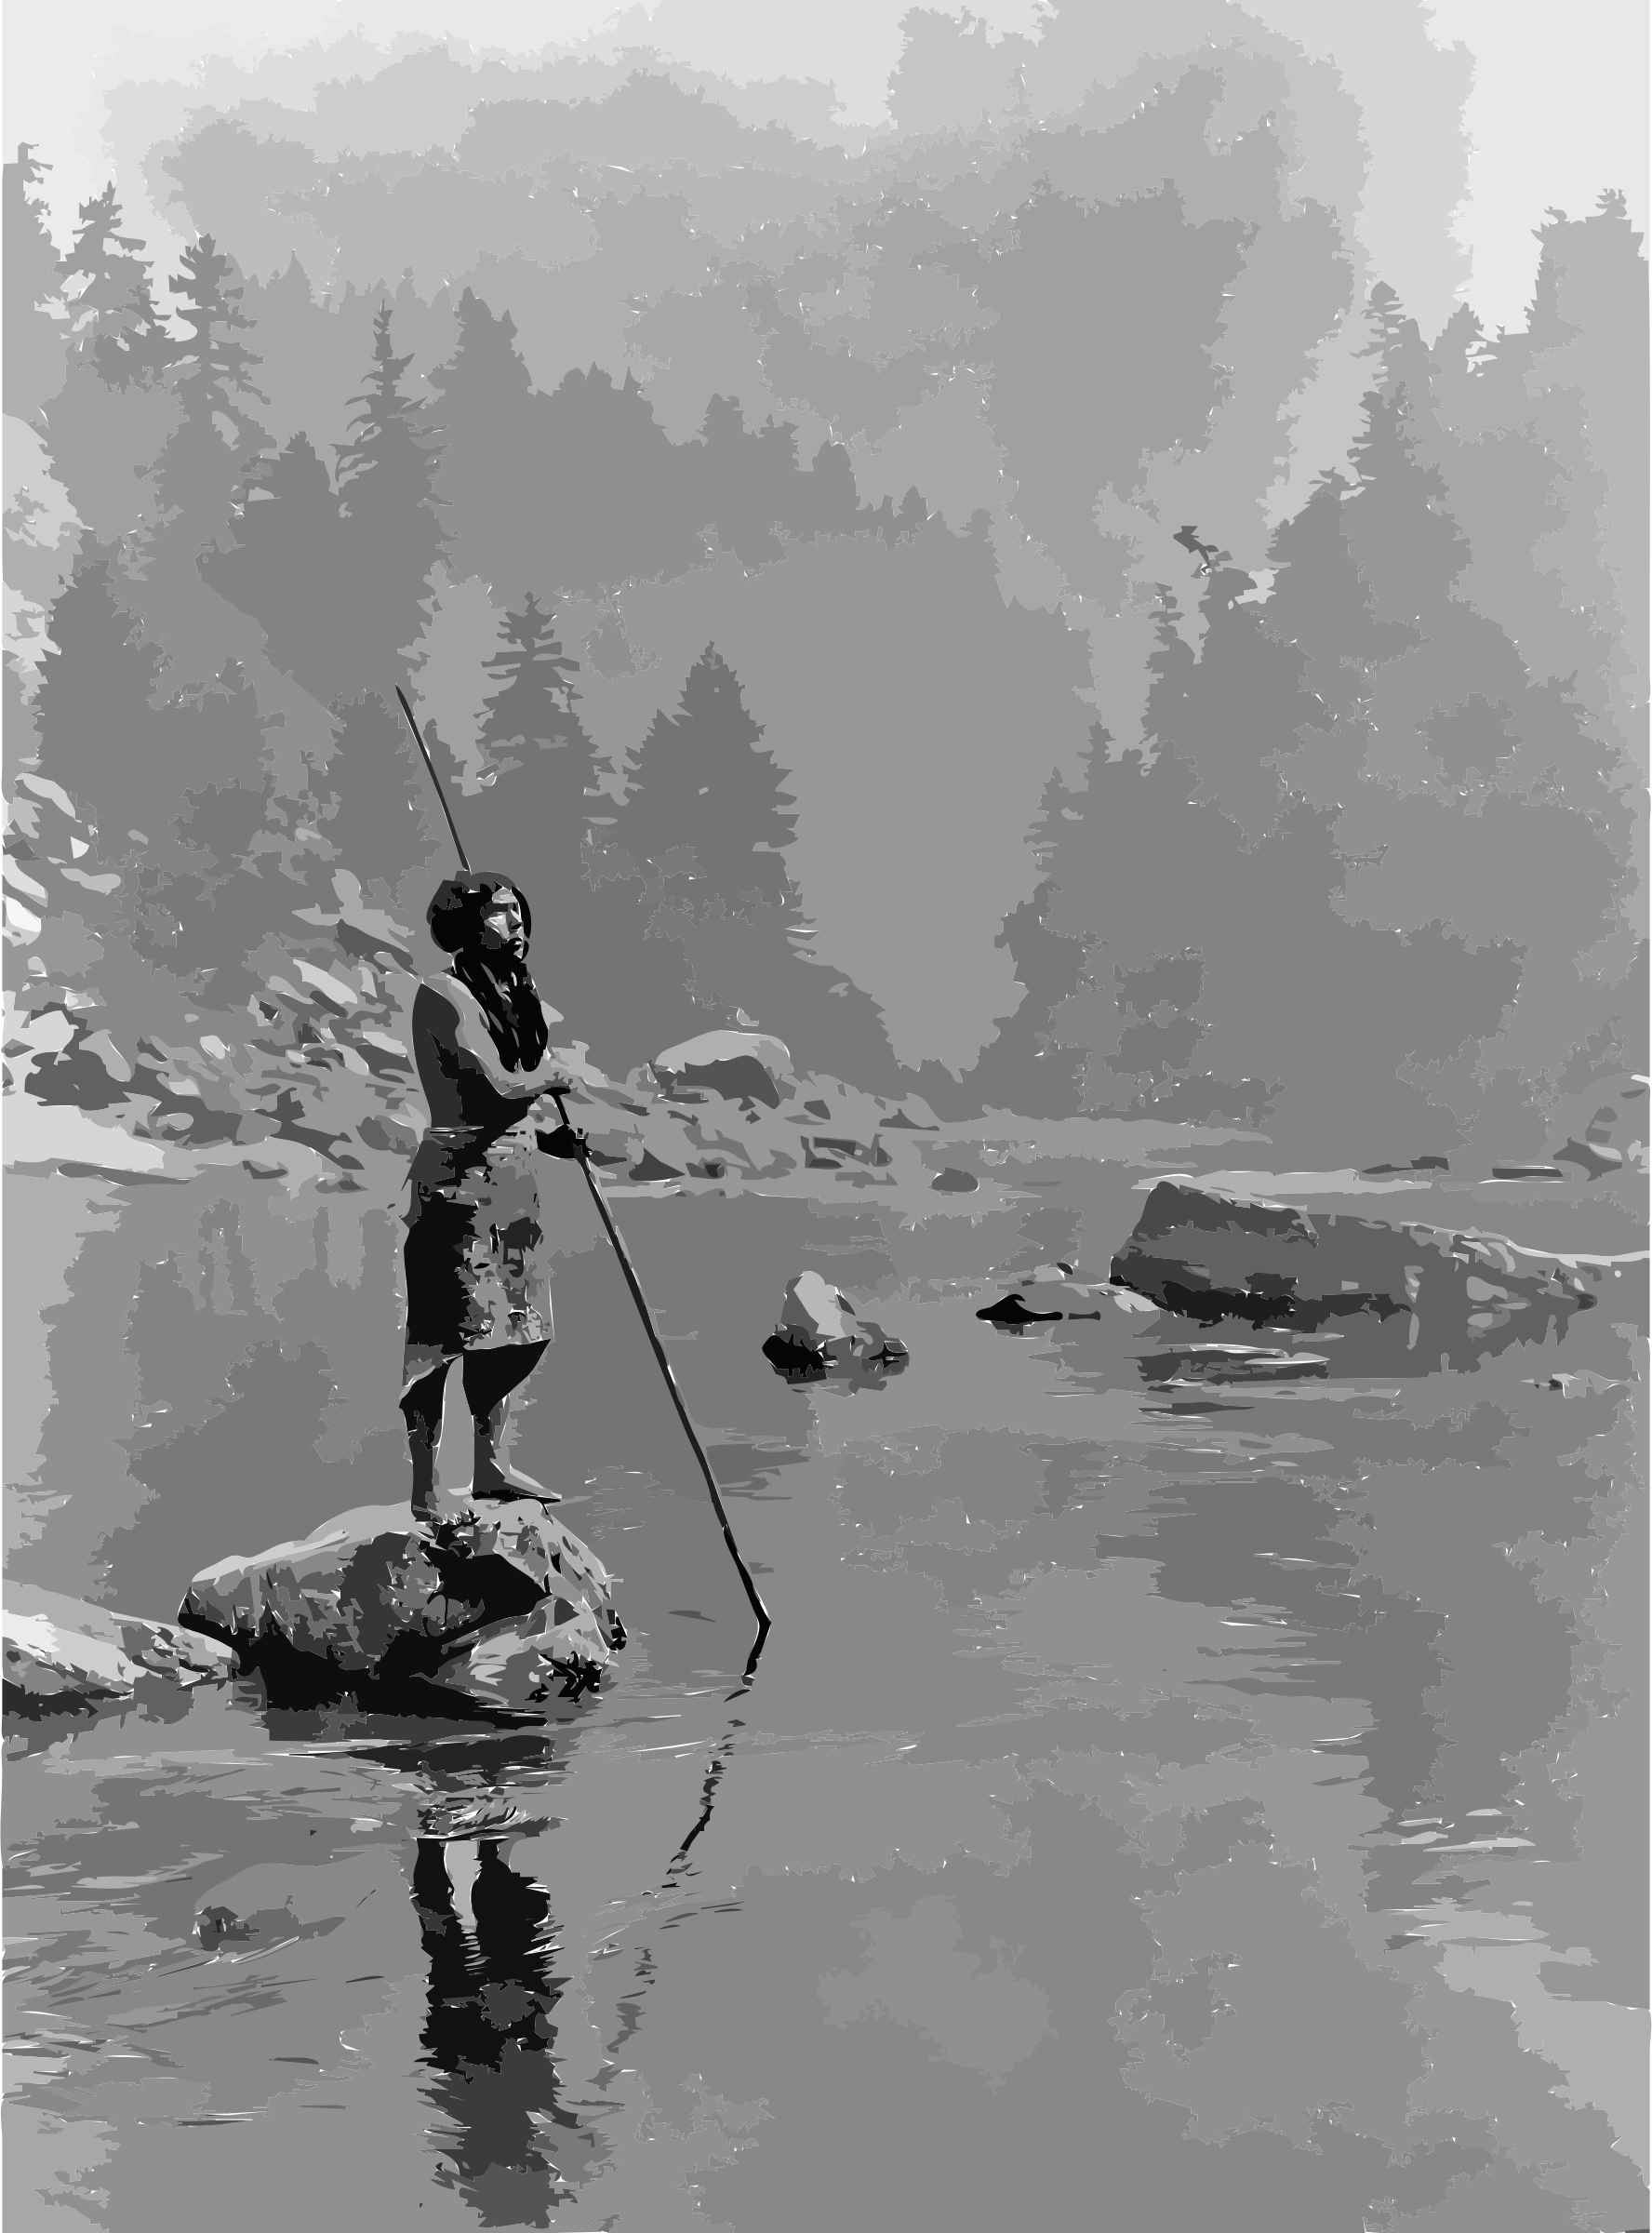 transparent download Clipart a smoky day. Drawing reflections water